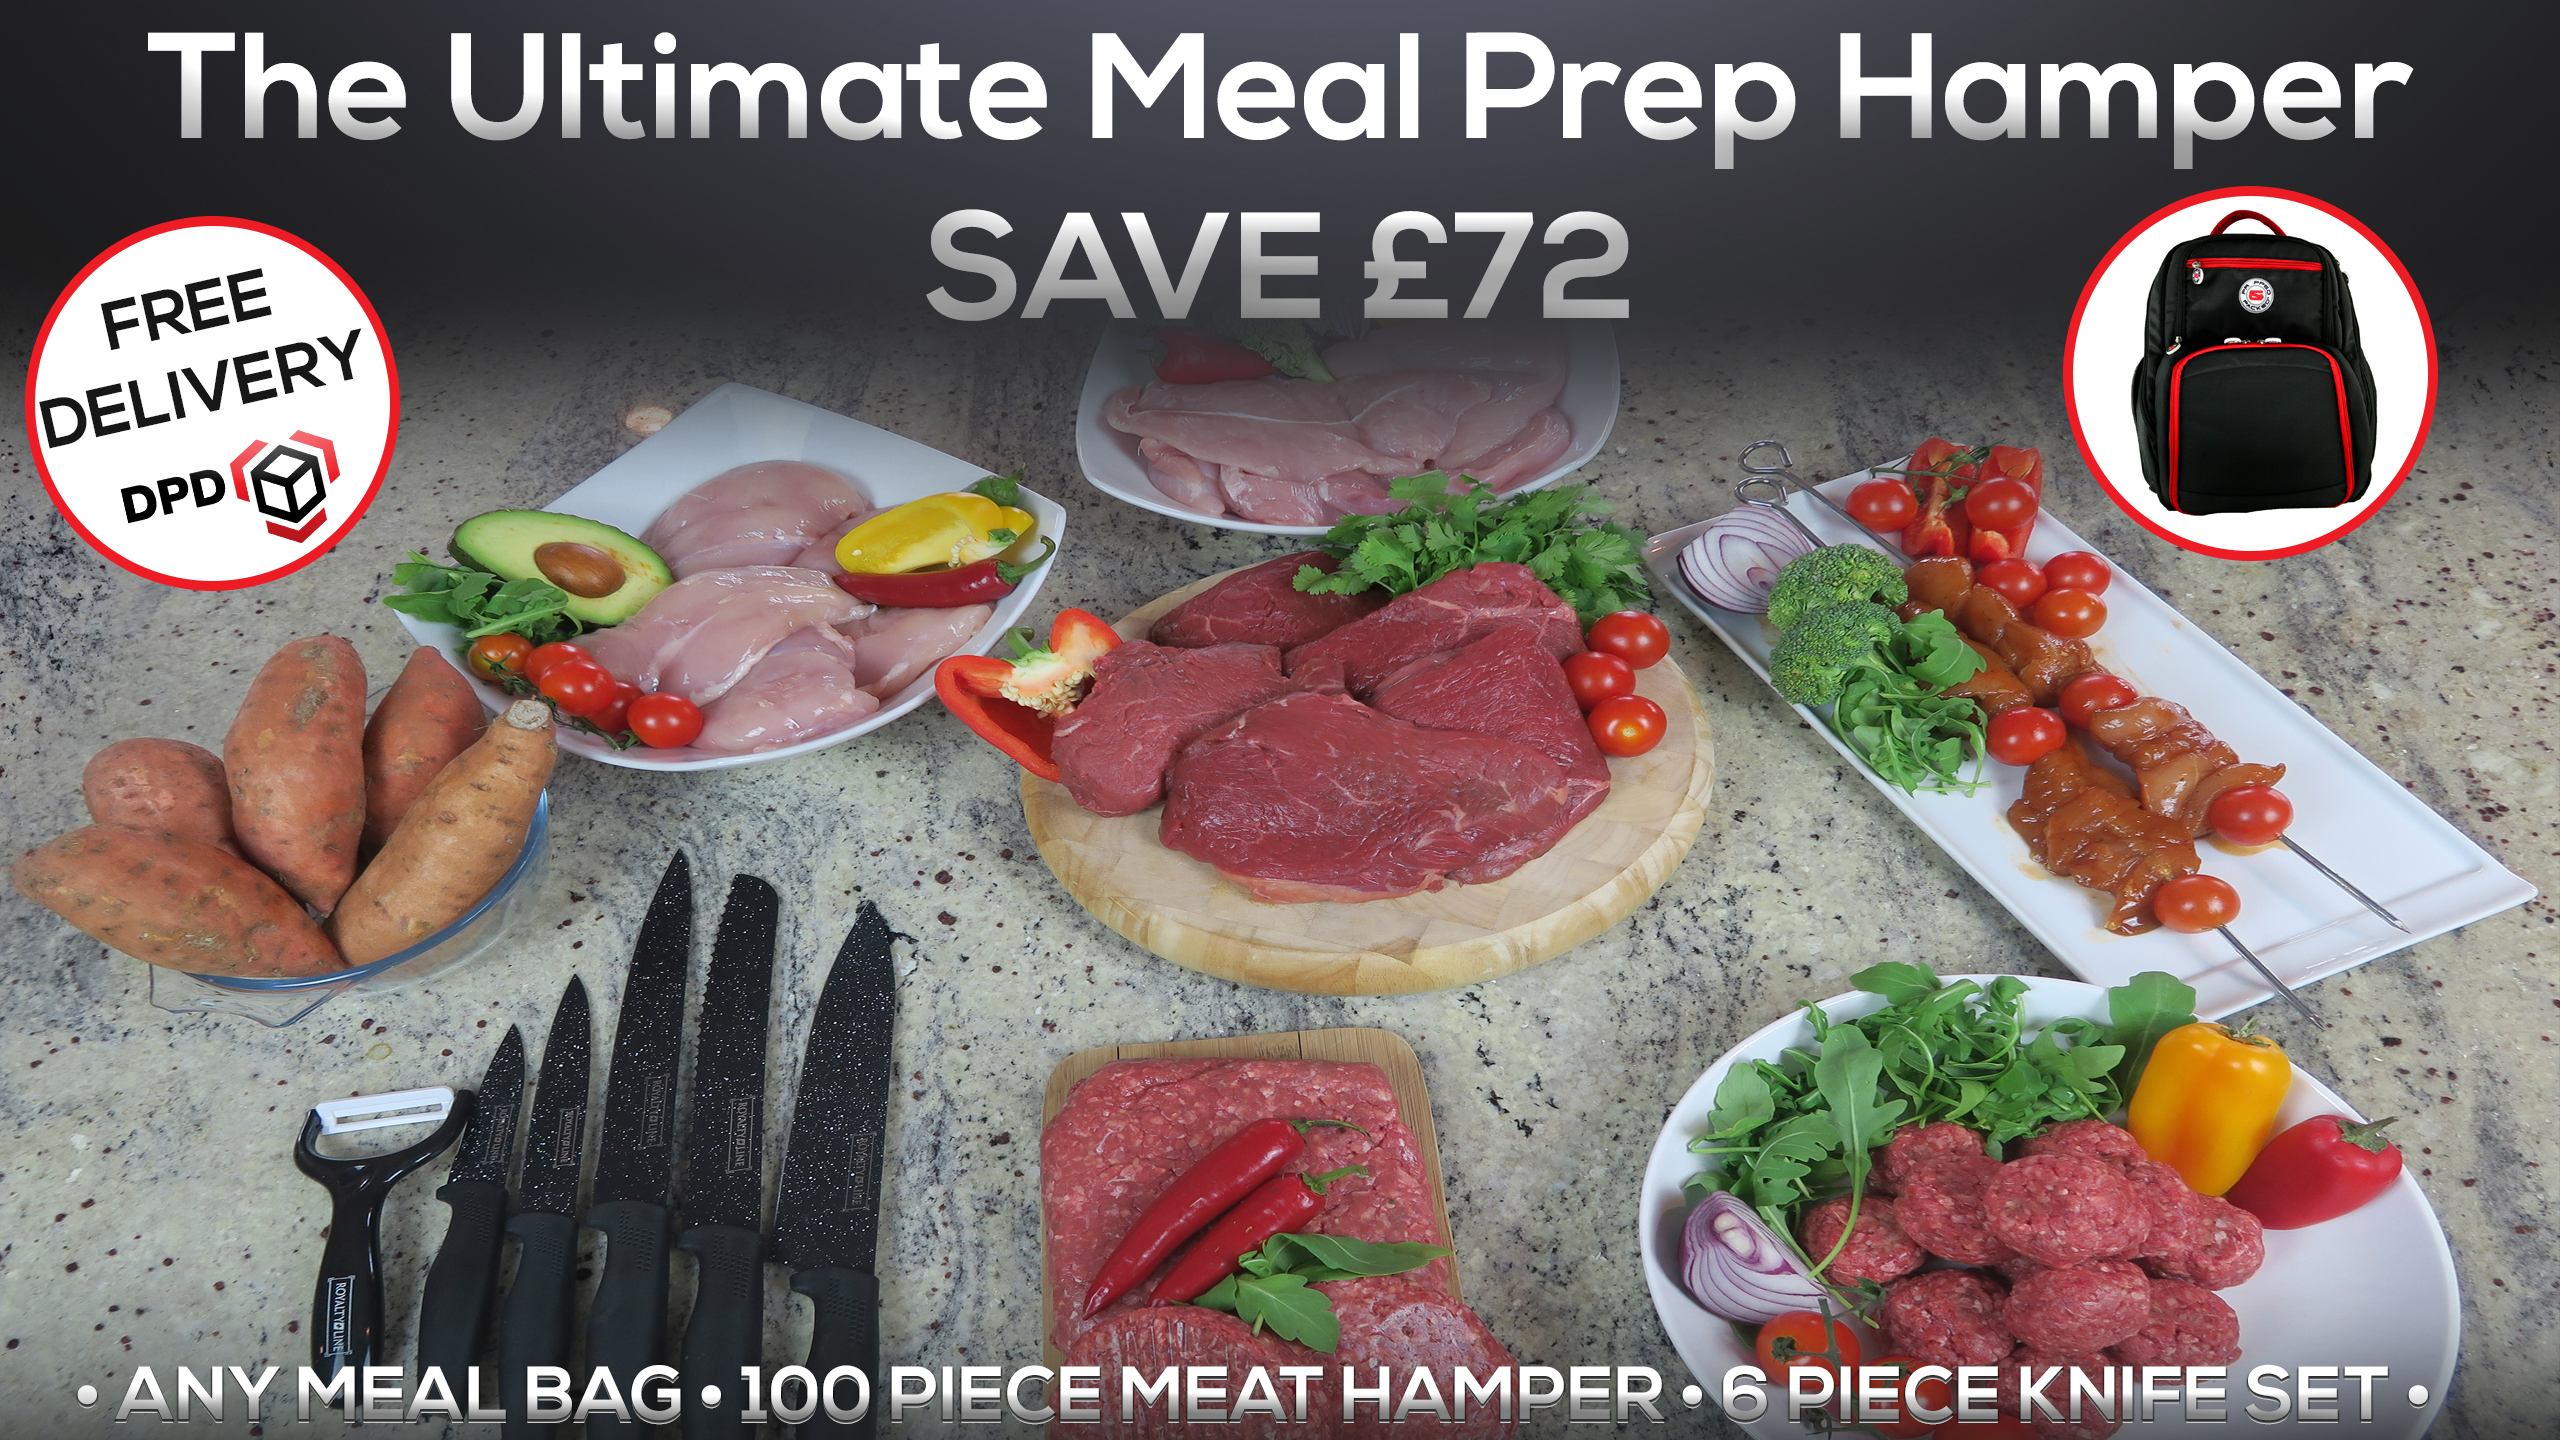 The Ultimate Meal Prep Hamper Prepped & Packed